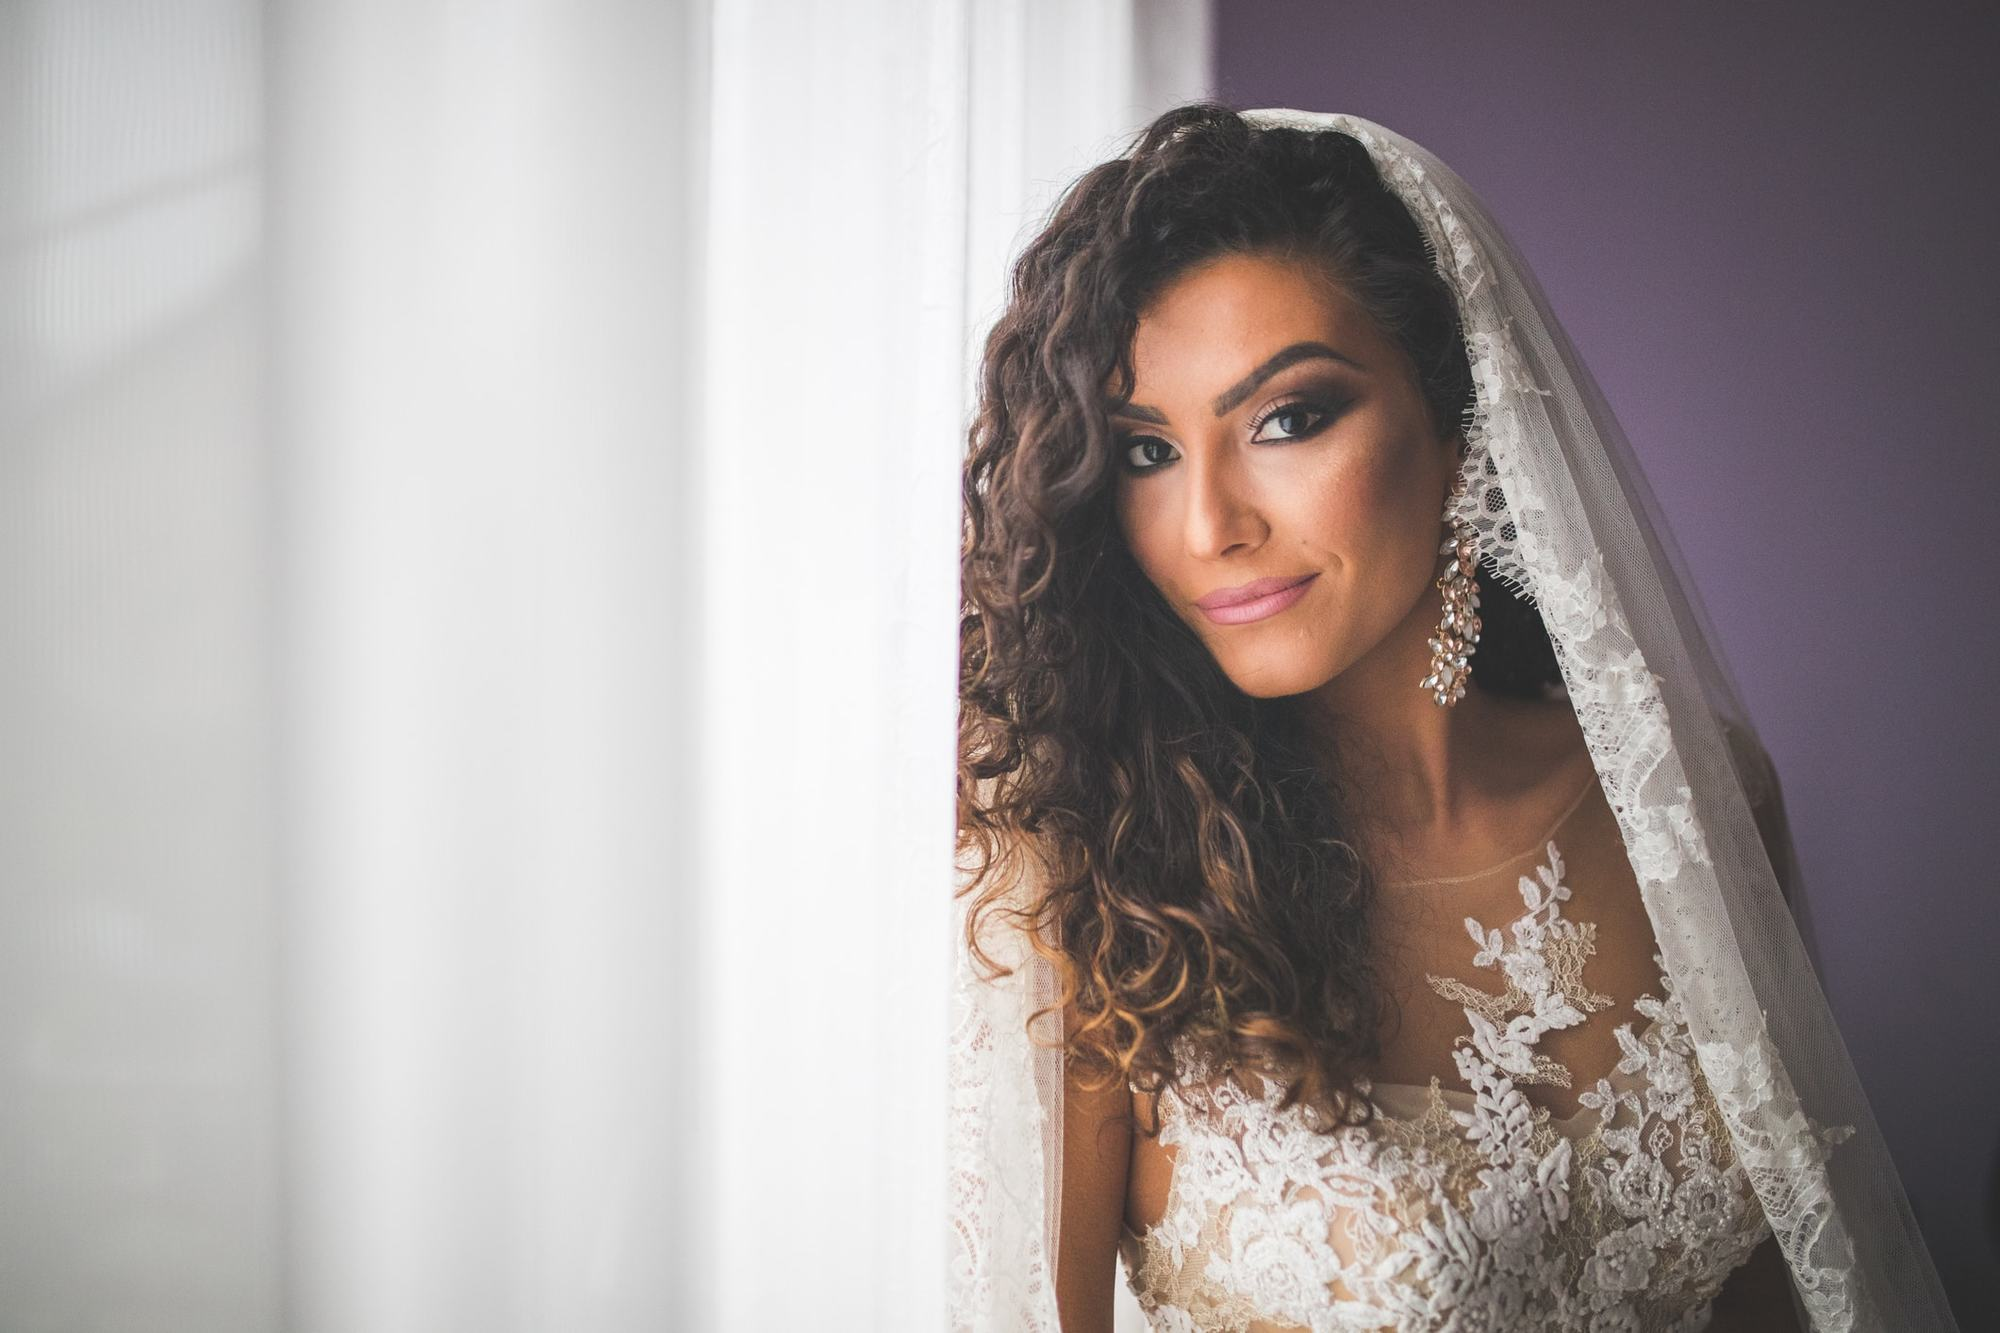 Best Wedding Hair: 23 Looks to Inspire Your Bridal Style